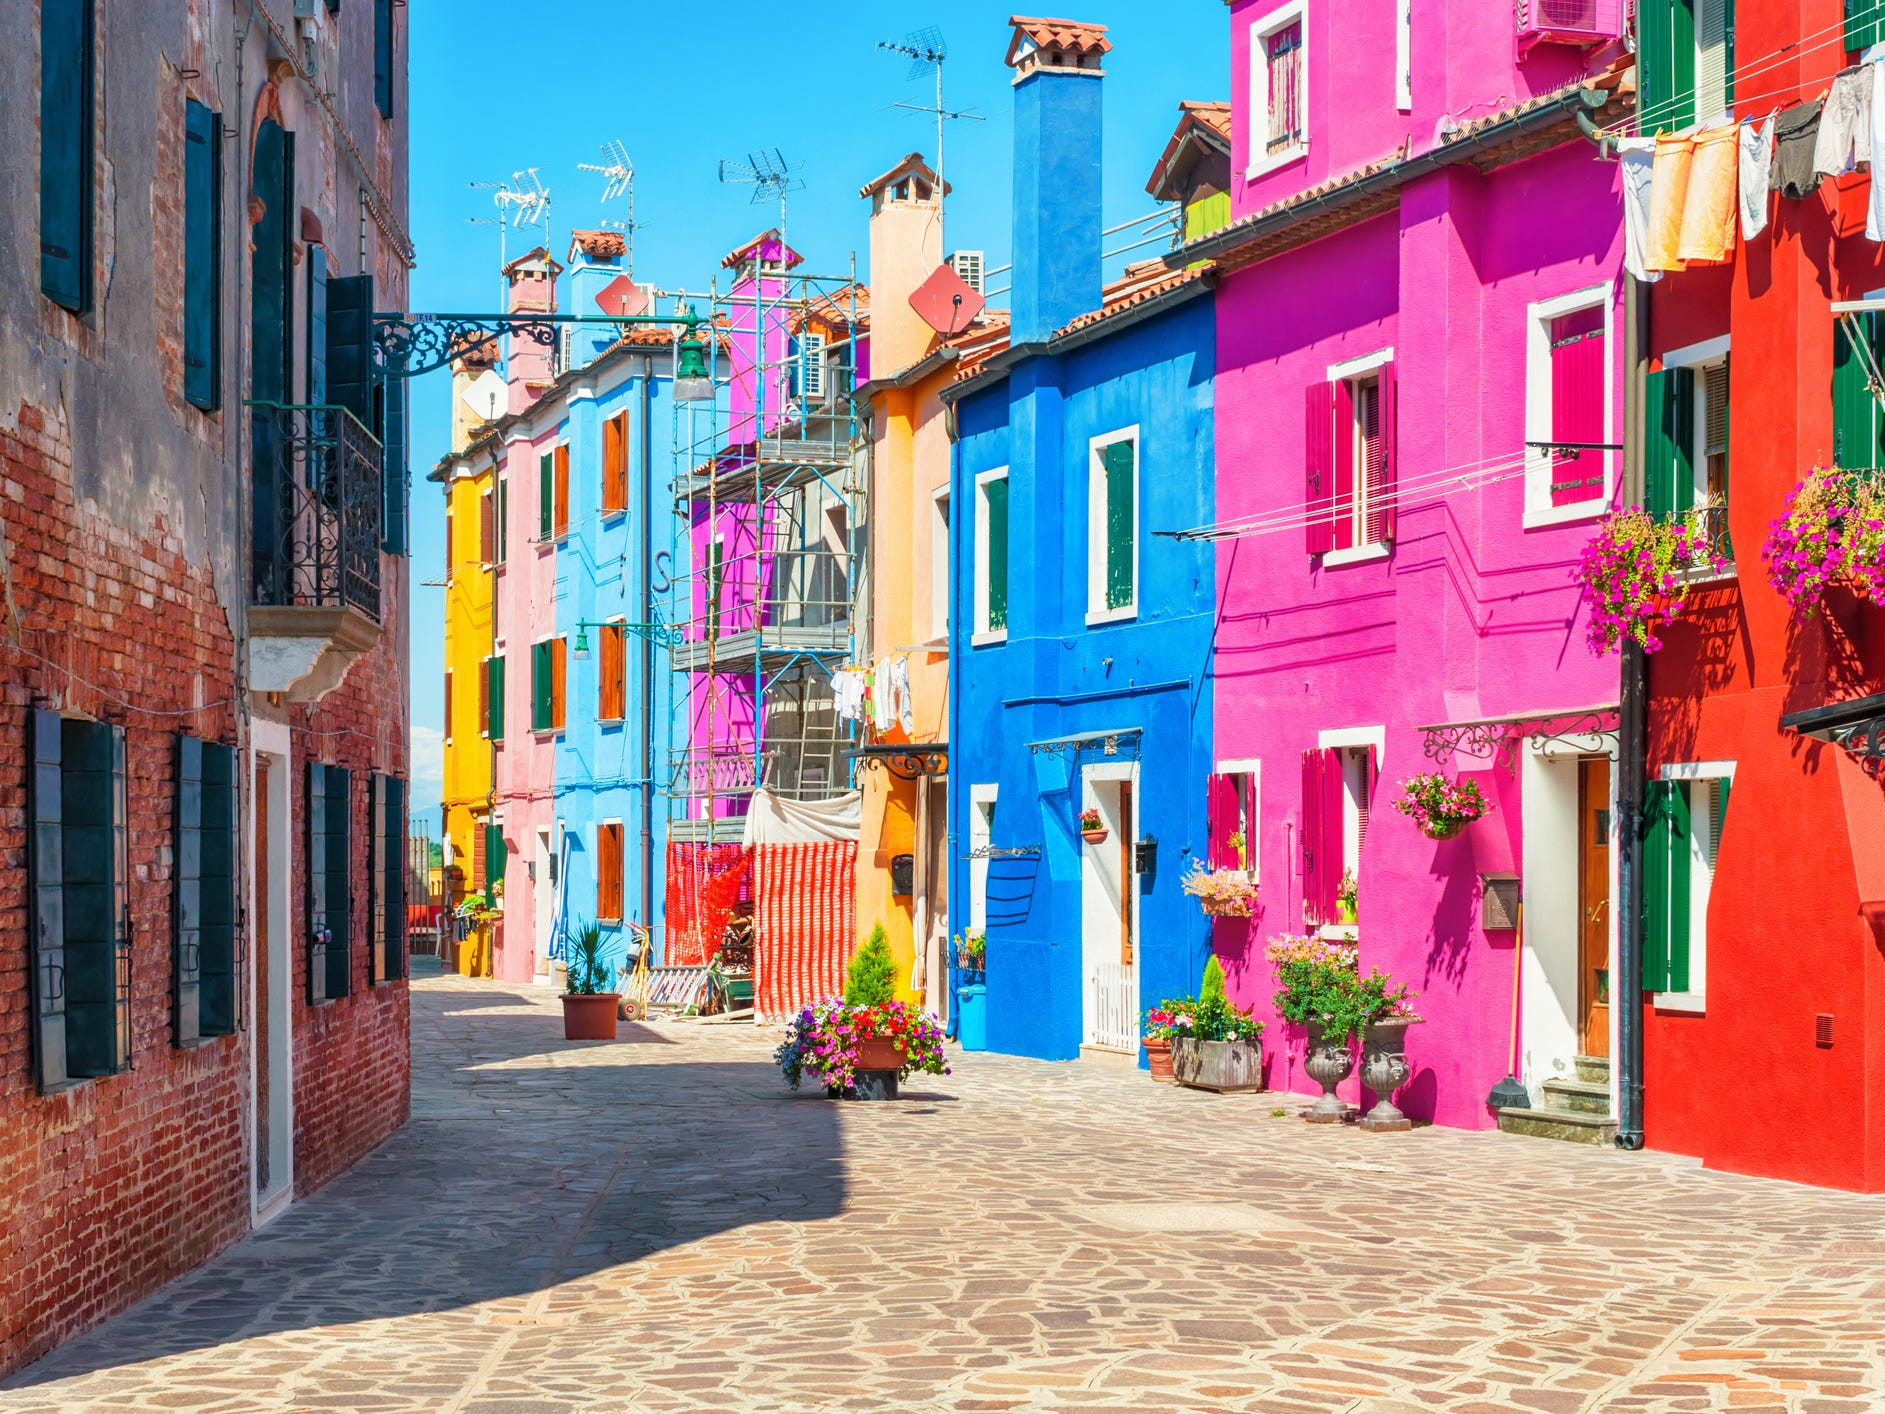 Smaller, quieter and infinitely more colorful, the fishing village of Burano is known for its traditional lace-making industry and for its buildings painted in every shade of the rainbow.